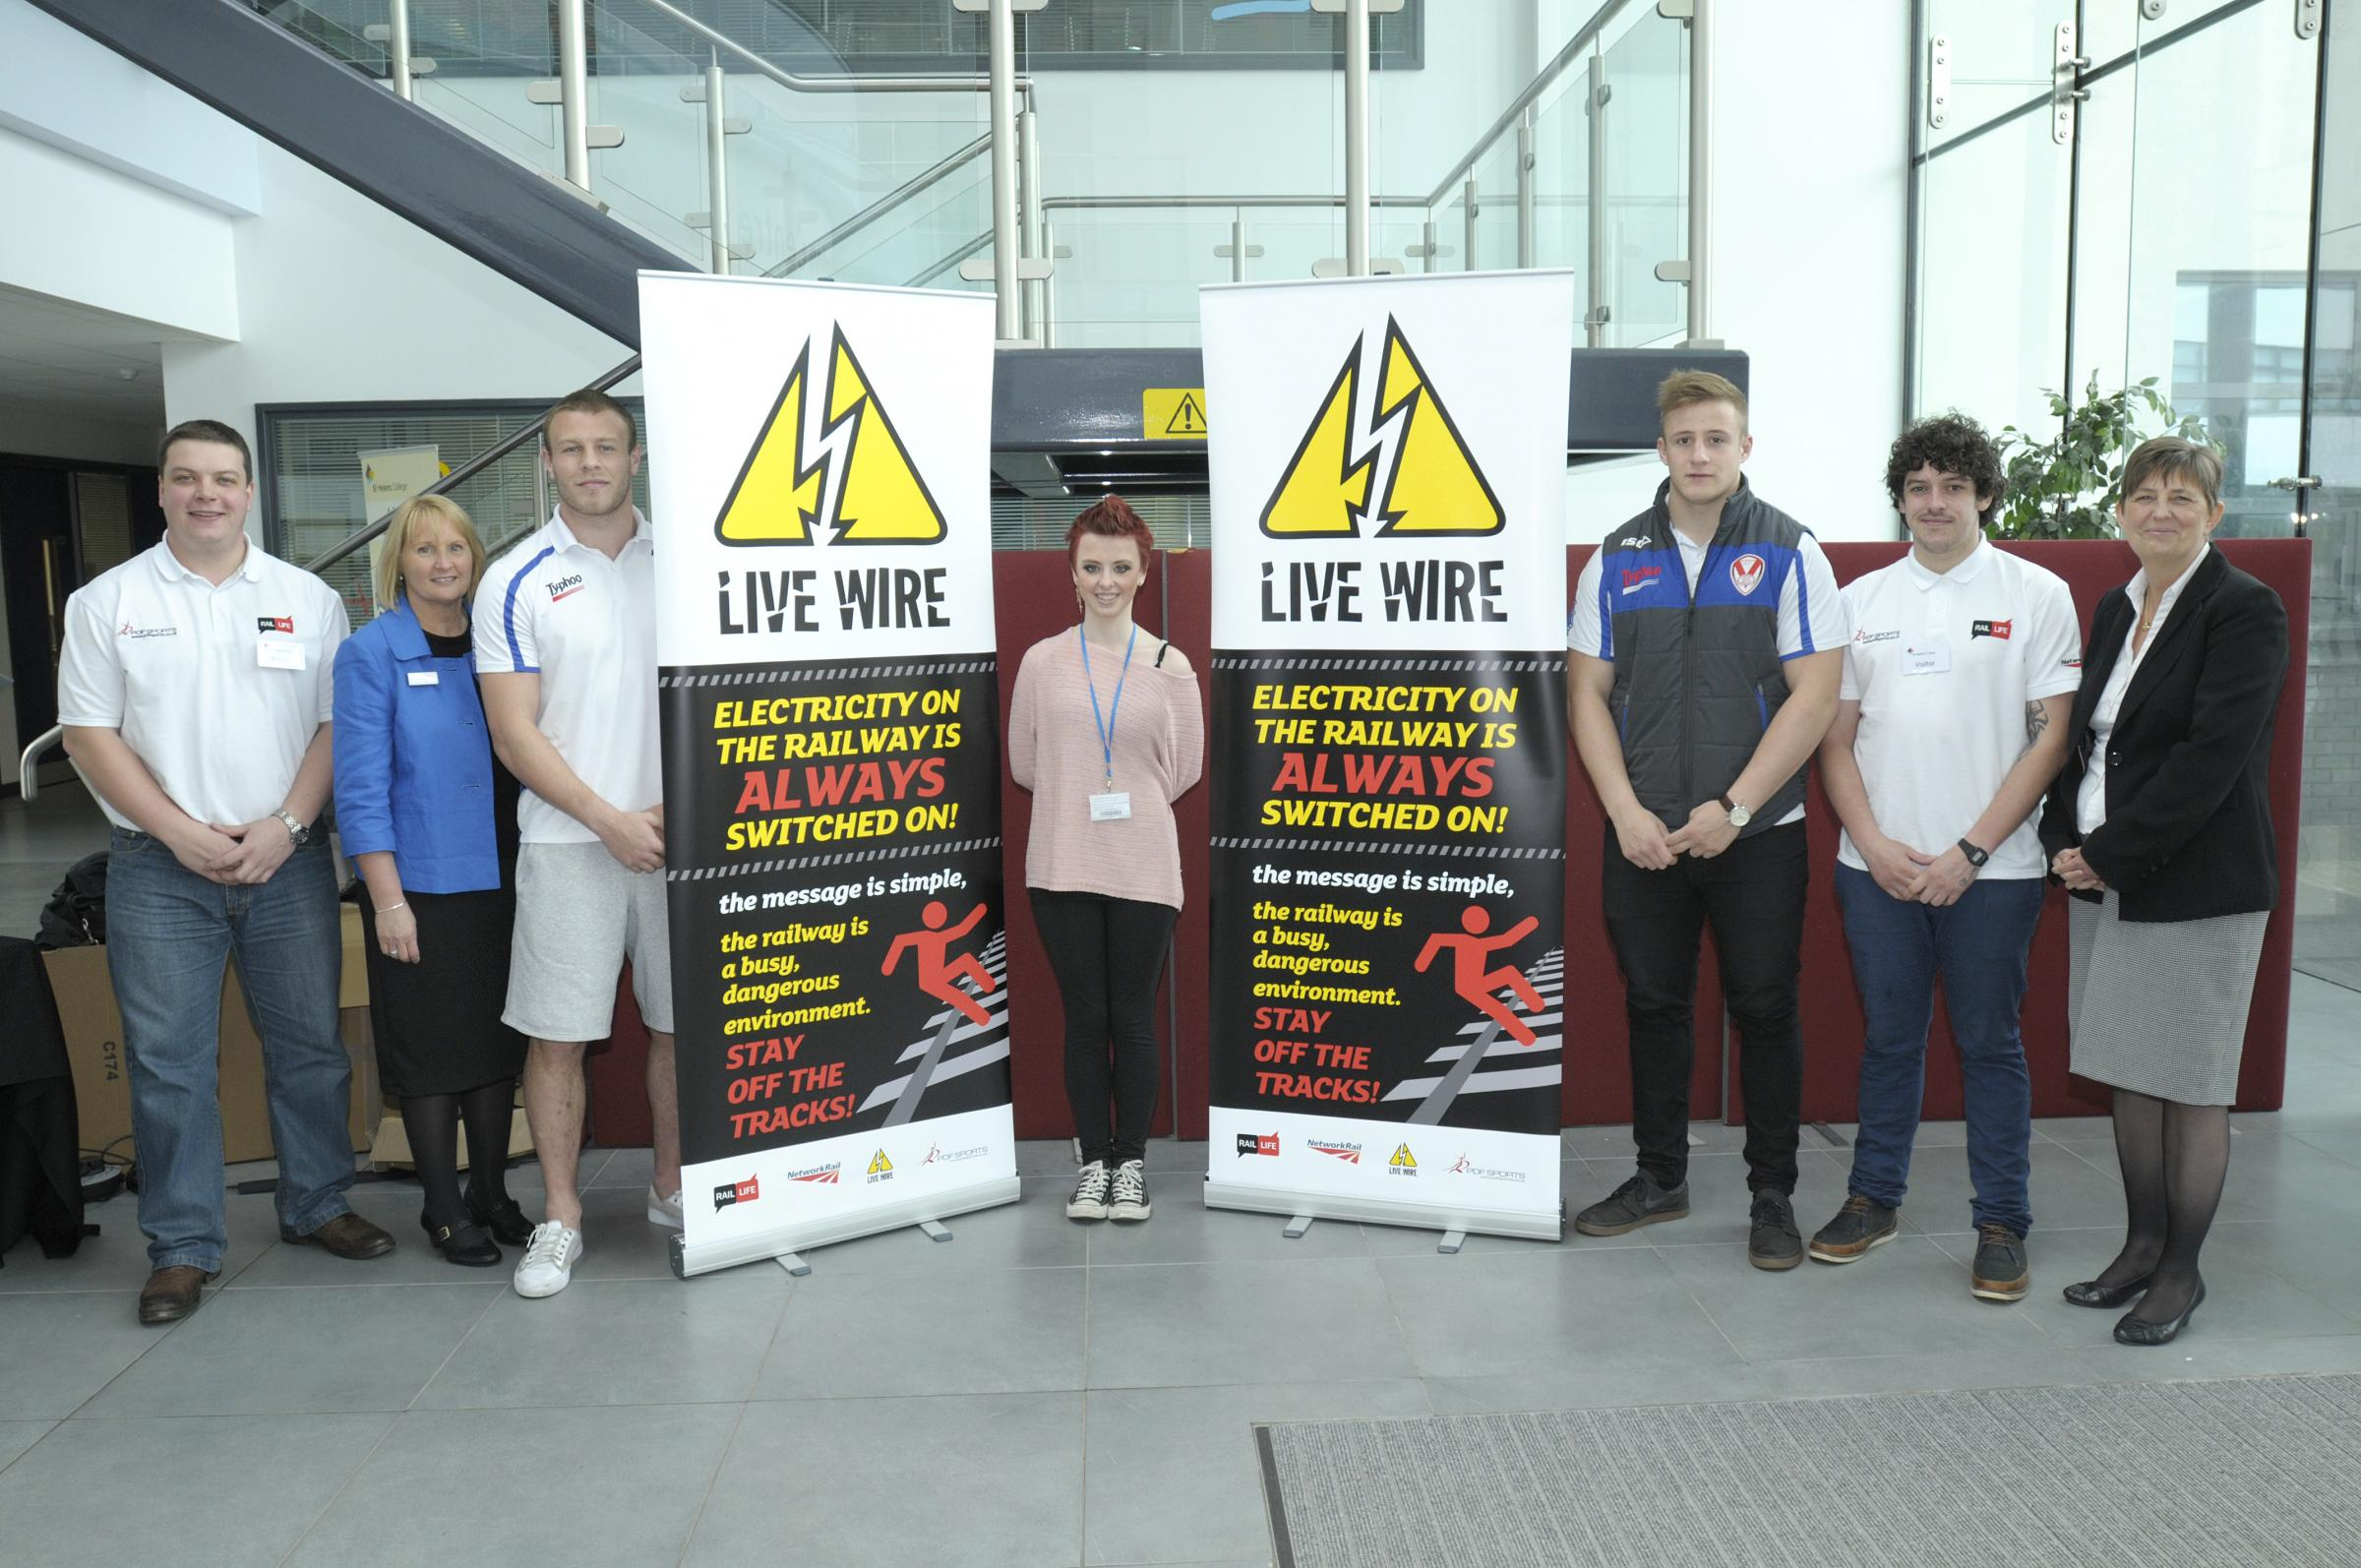 From left, Phil Fitton of PDF Sports, Janet Clark from Network Rail, Saints player Josh Jones, student Chloe Westhead, Saints' Greg Richards, Nick Holt, PDF Sports, and college principal Dr Jette Burford attended the campaign launch